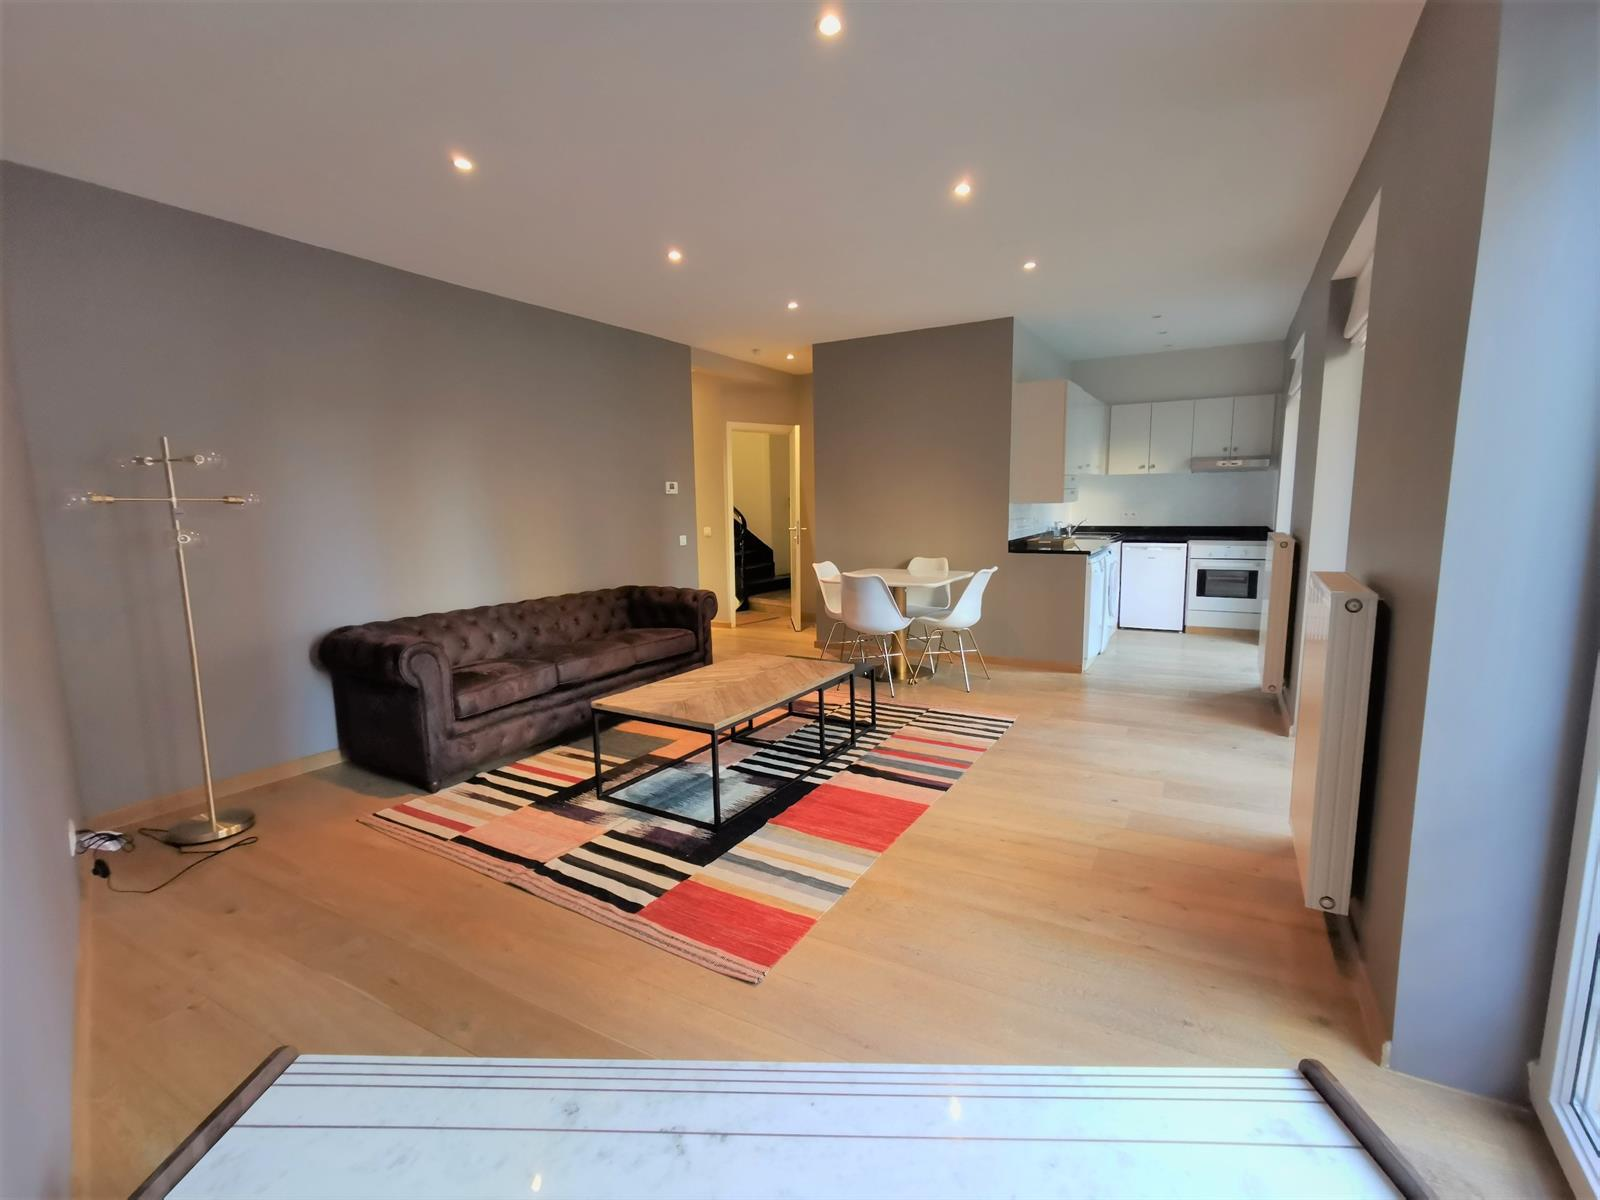 Minimes - Spacious apartment in Brussels for expats